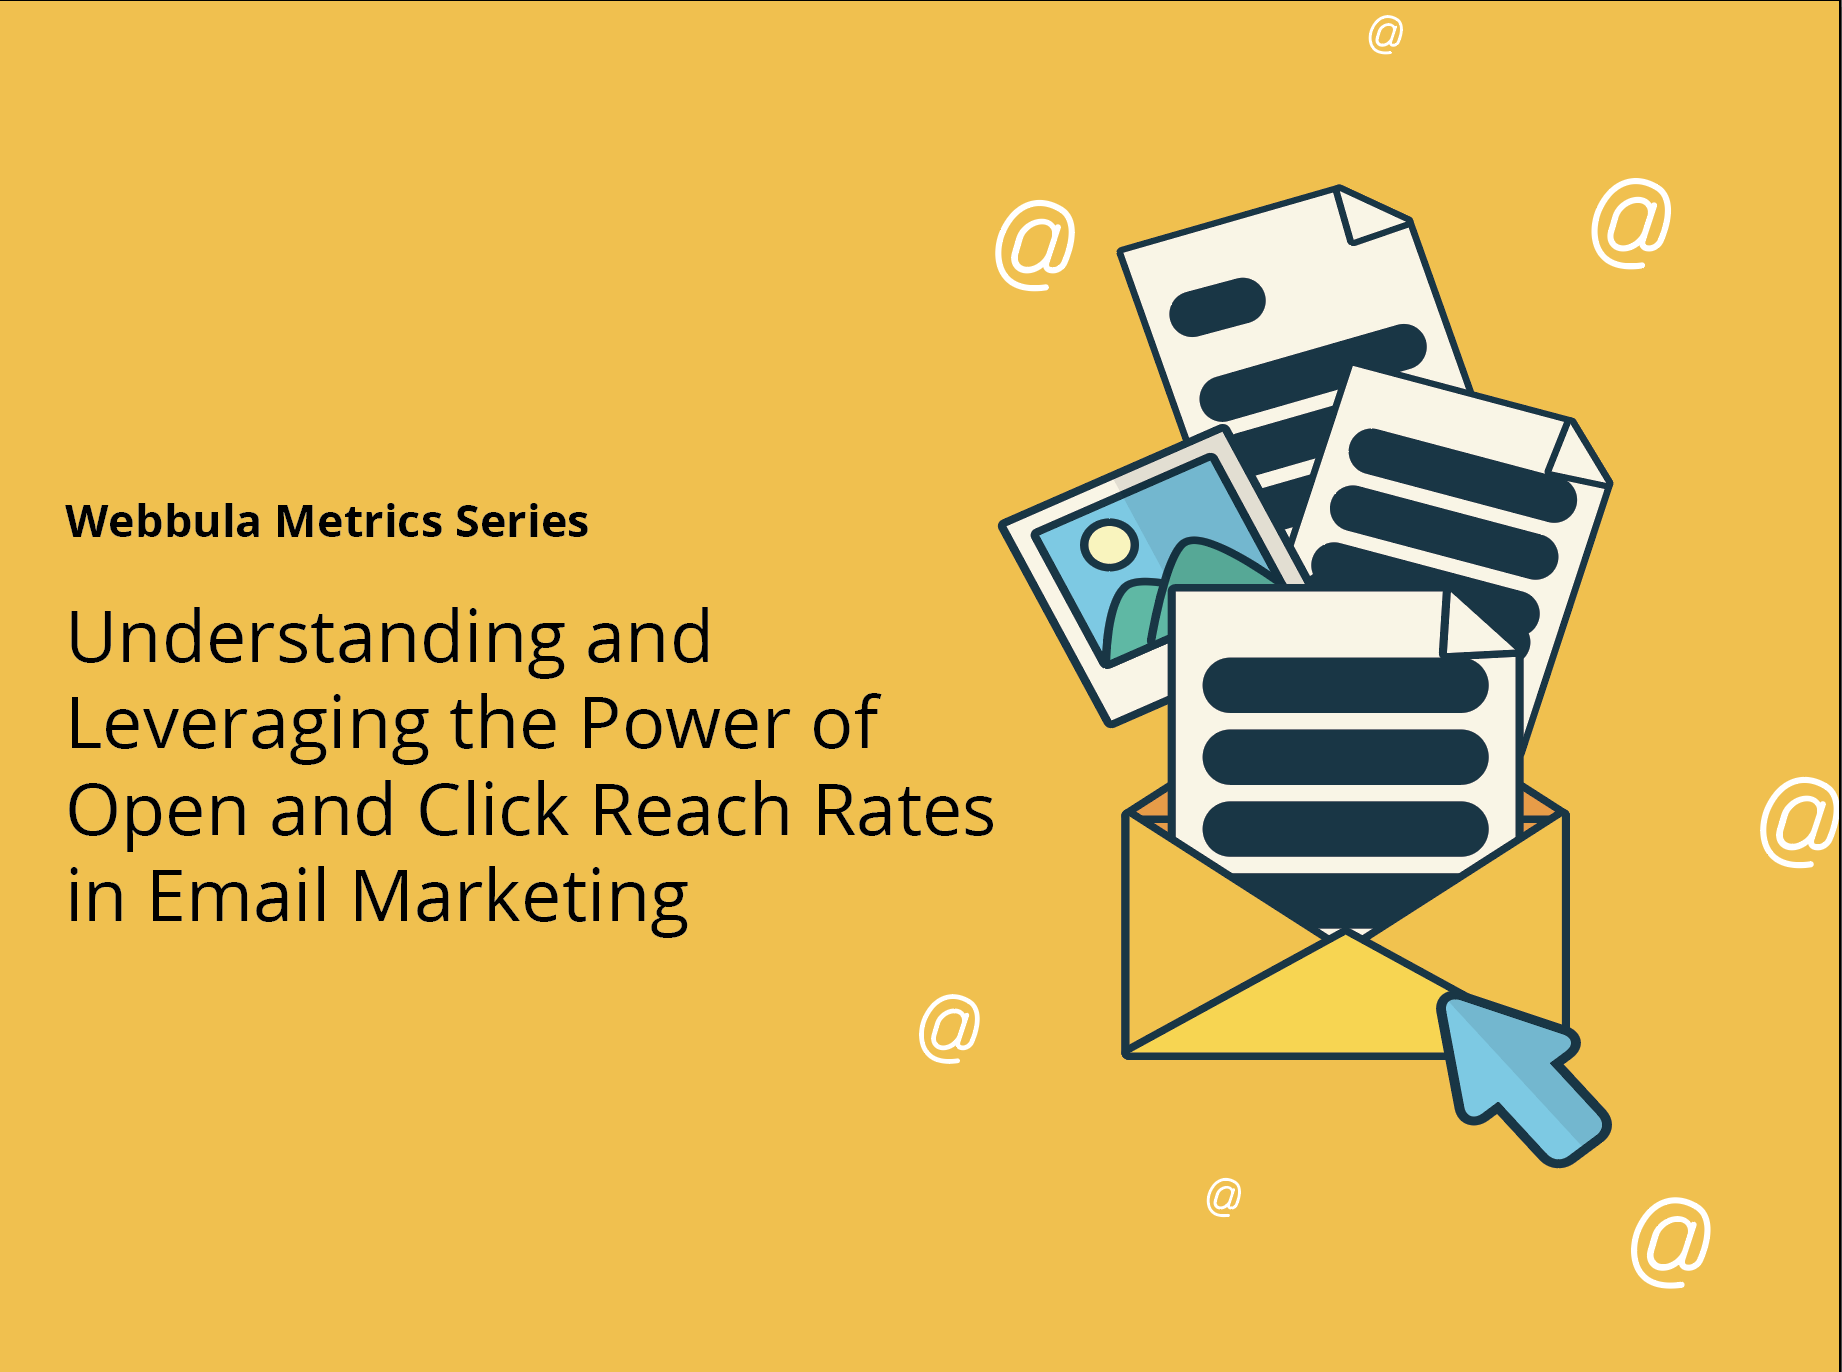 Webbula Metrics Series: Understanding and Leveraging the Power of Open and Click Reach Rates in Email Marketing